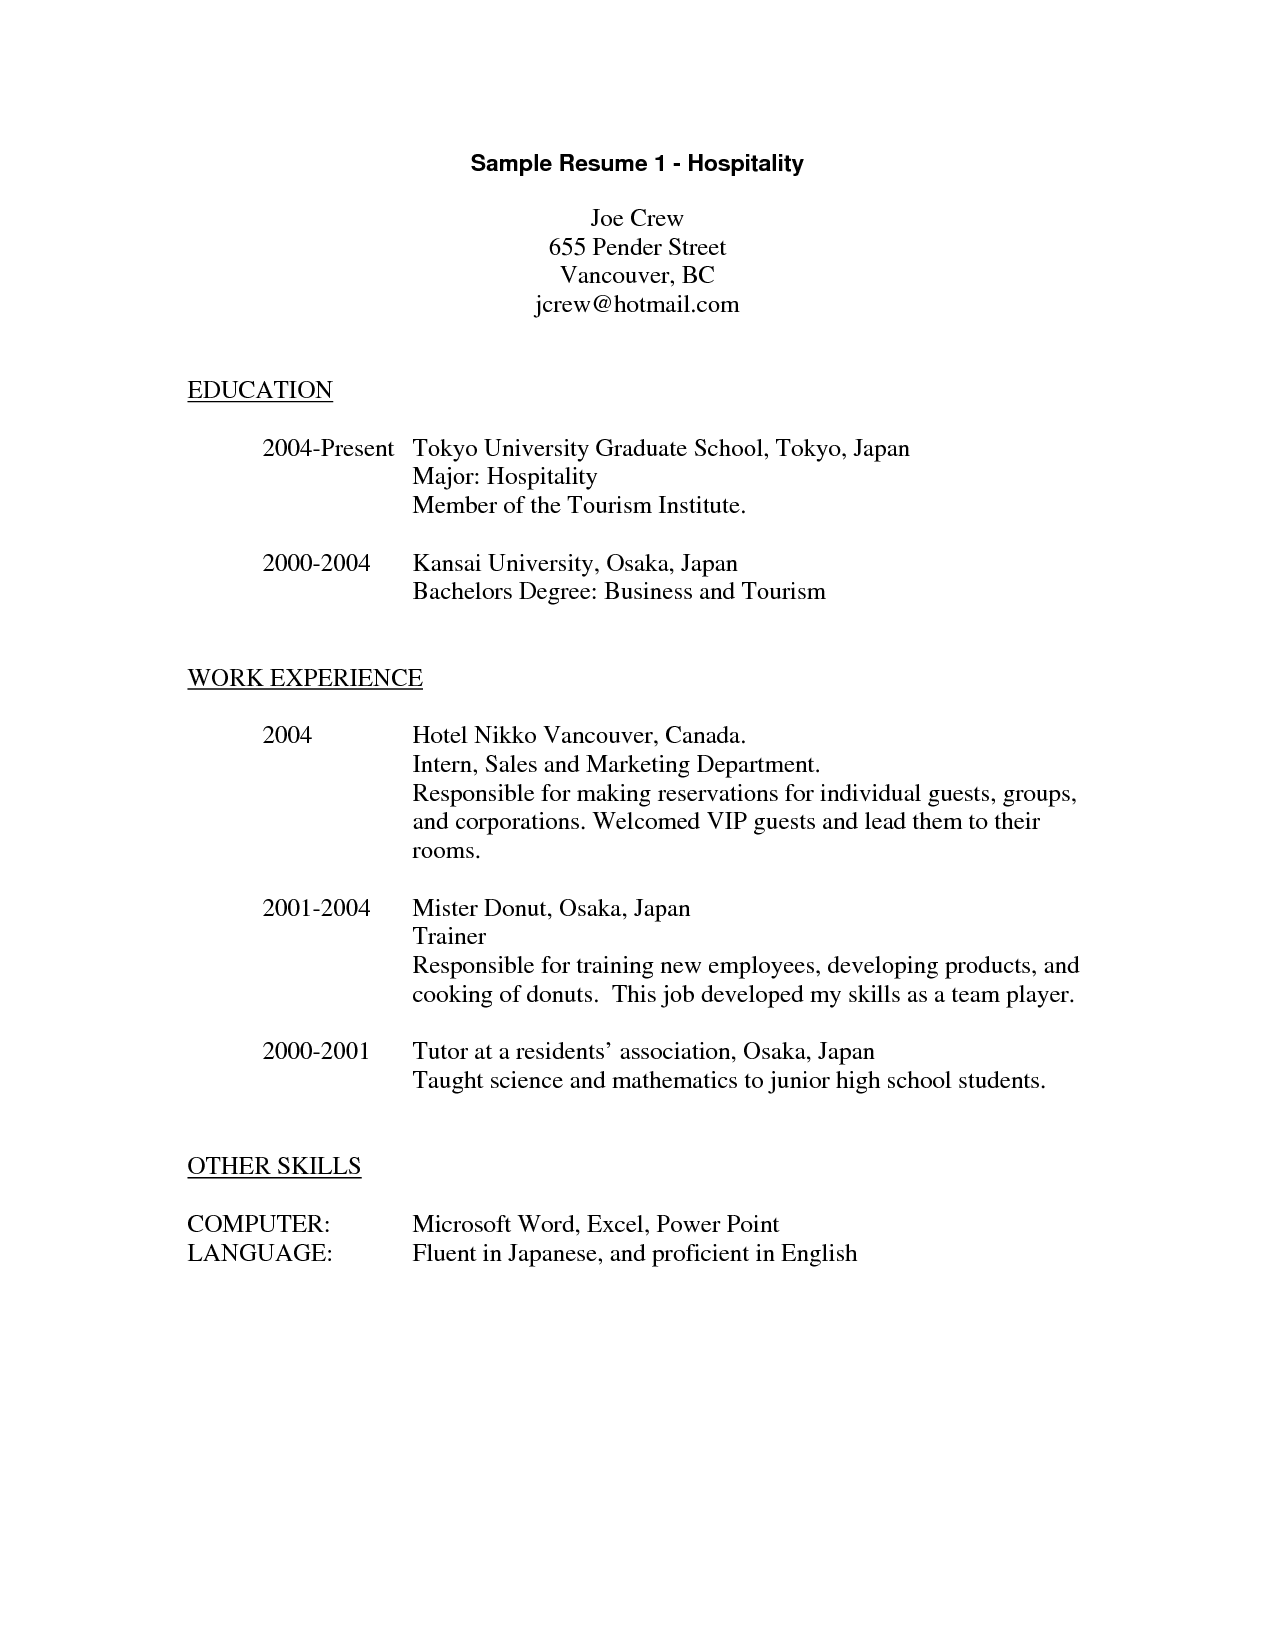 Sample Resume For Hospitality Industry Sample Resume For – Sample Resume for Entertainment Industry